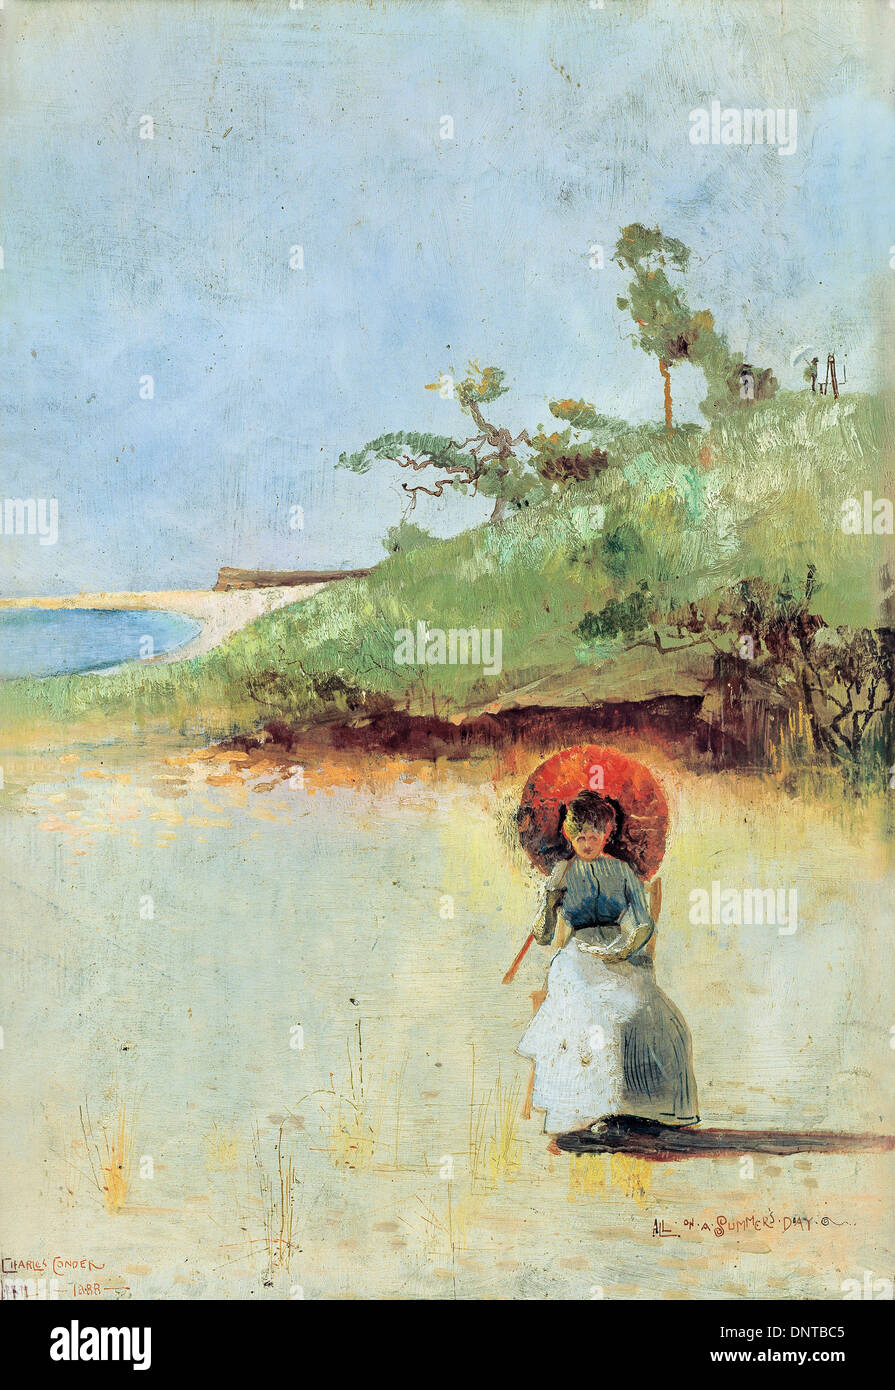 Charles Conder, All on a summer's day 1888 Oil on wood panel. Art Gallery of South Australia, North Terrace, Australia. - Stock Image